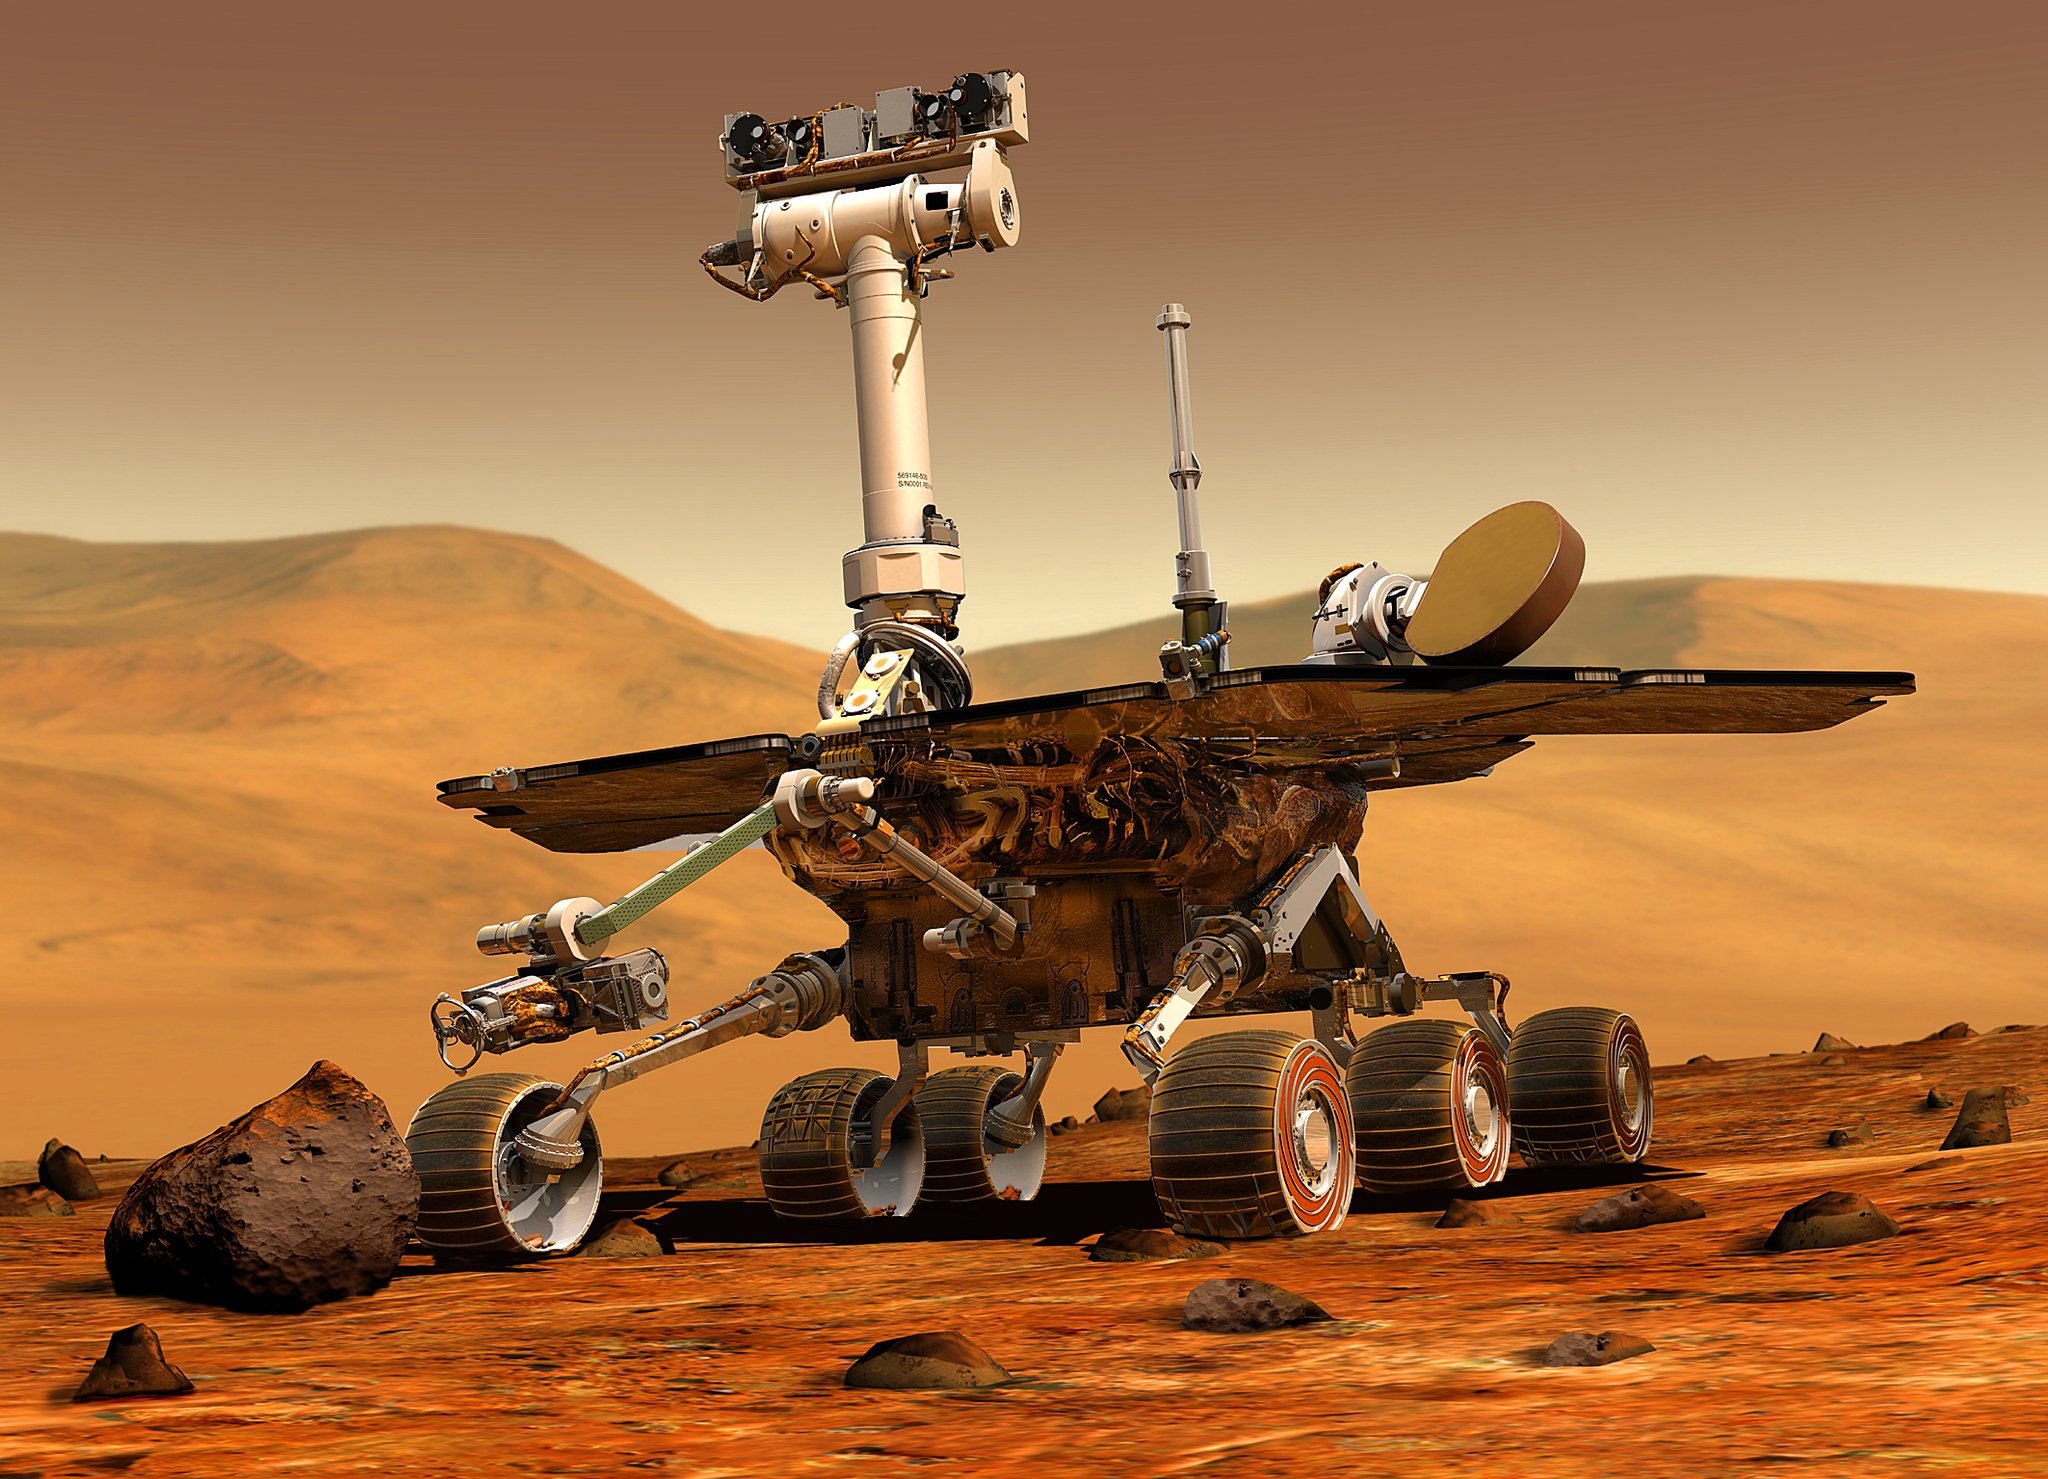 Over the past few weeks, NASA engineers tried to contact Opportunity several times